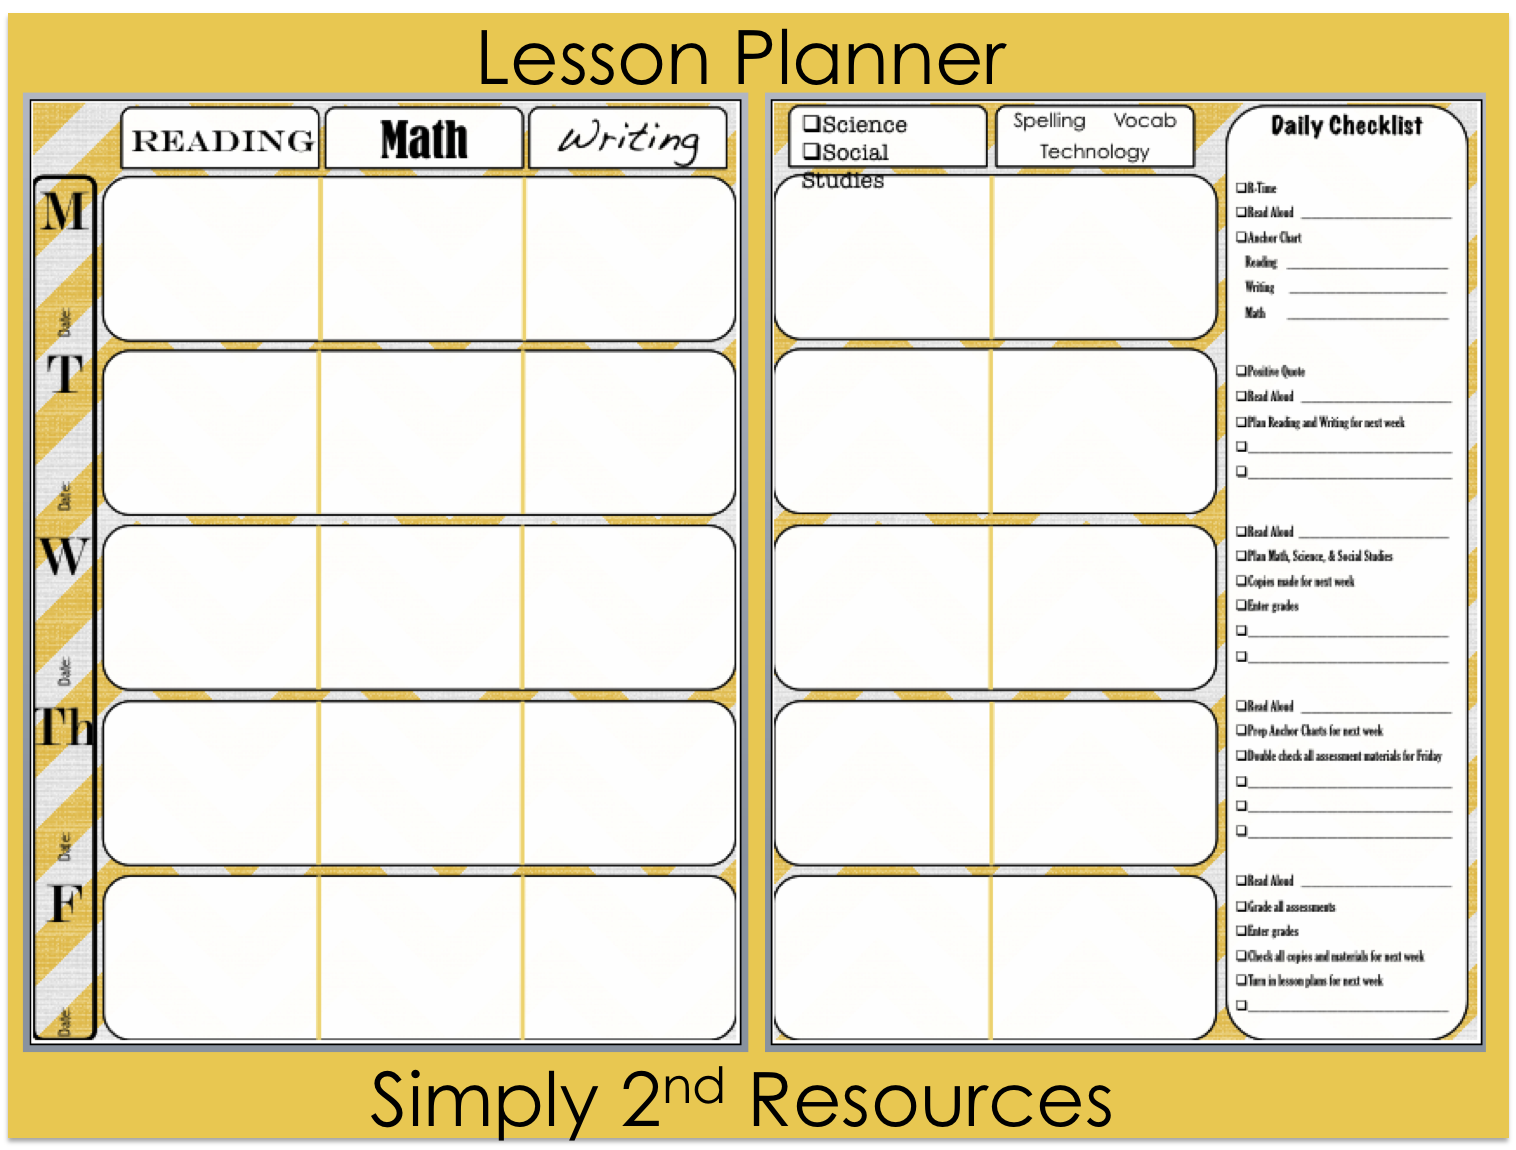 Weekly Lesson Plan Samples